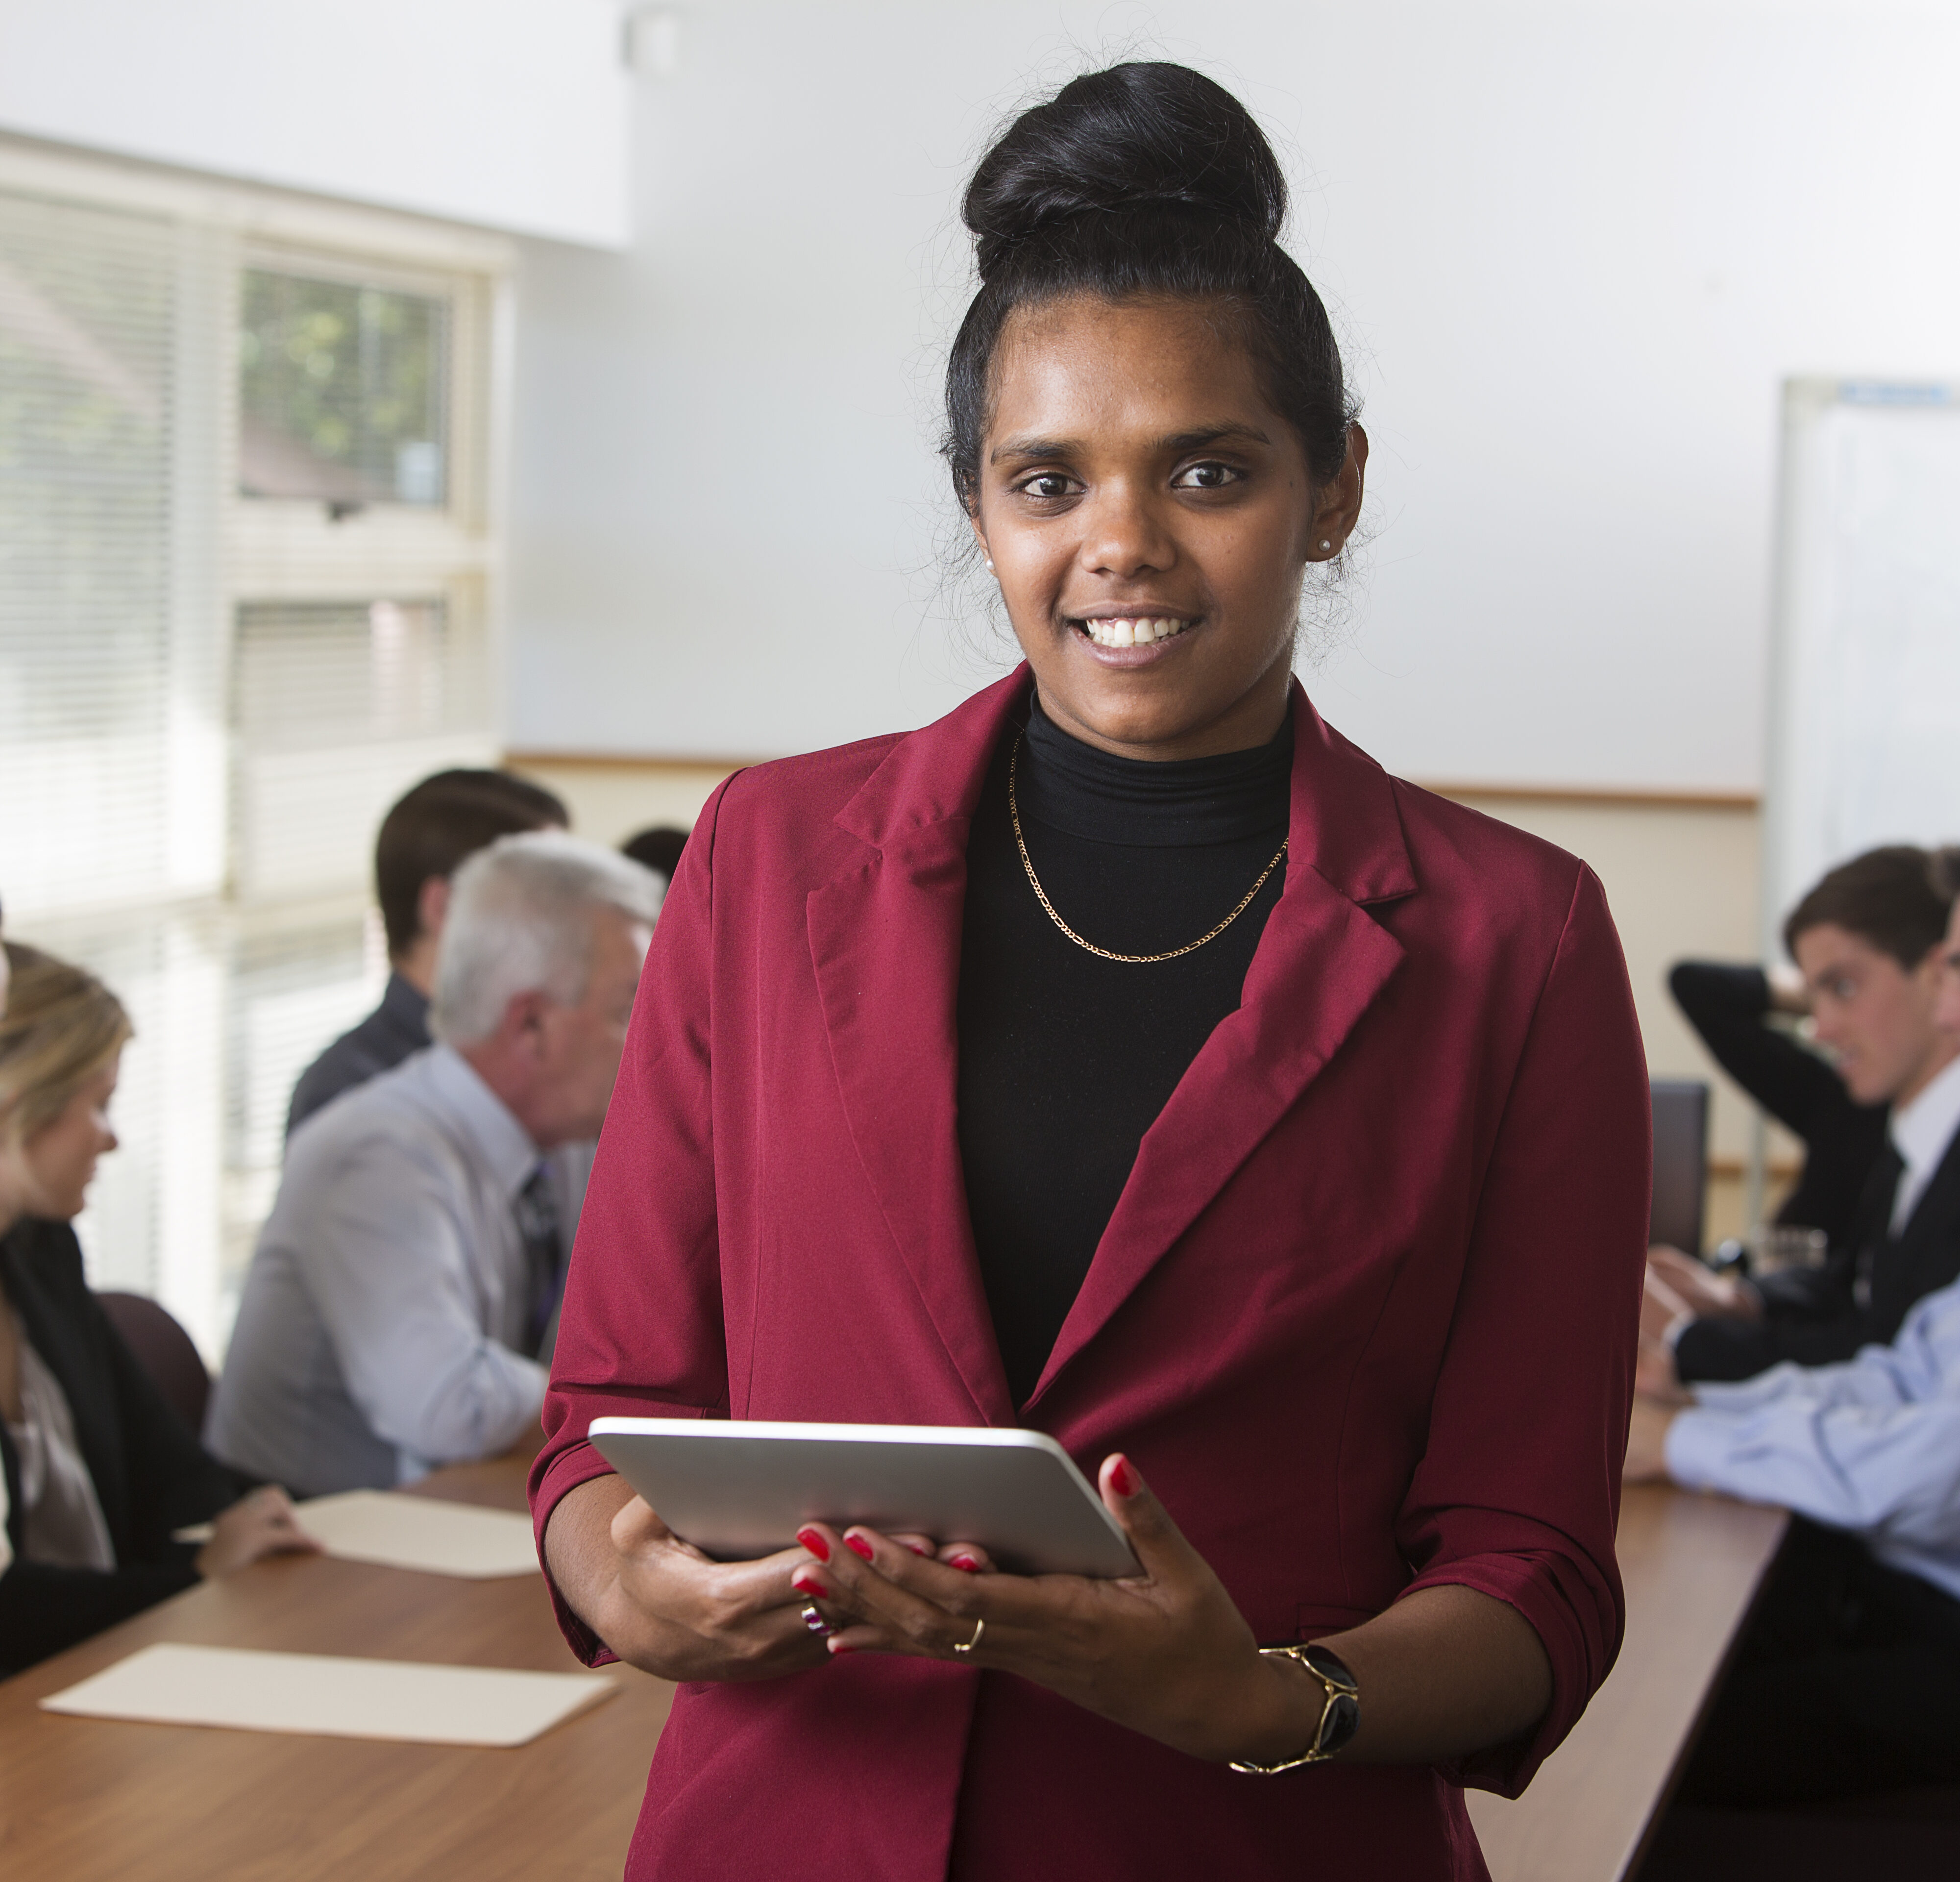 Austrtalian aboriginal woman using a tablet computer in a staff meeting or boardroom